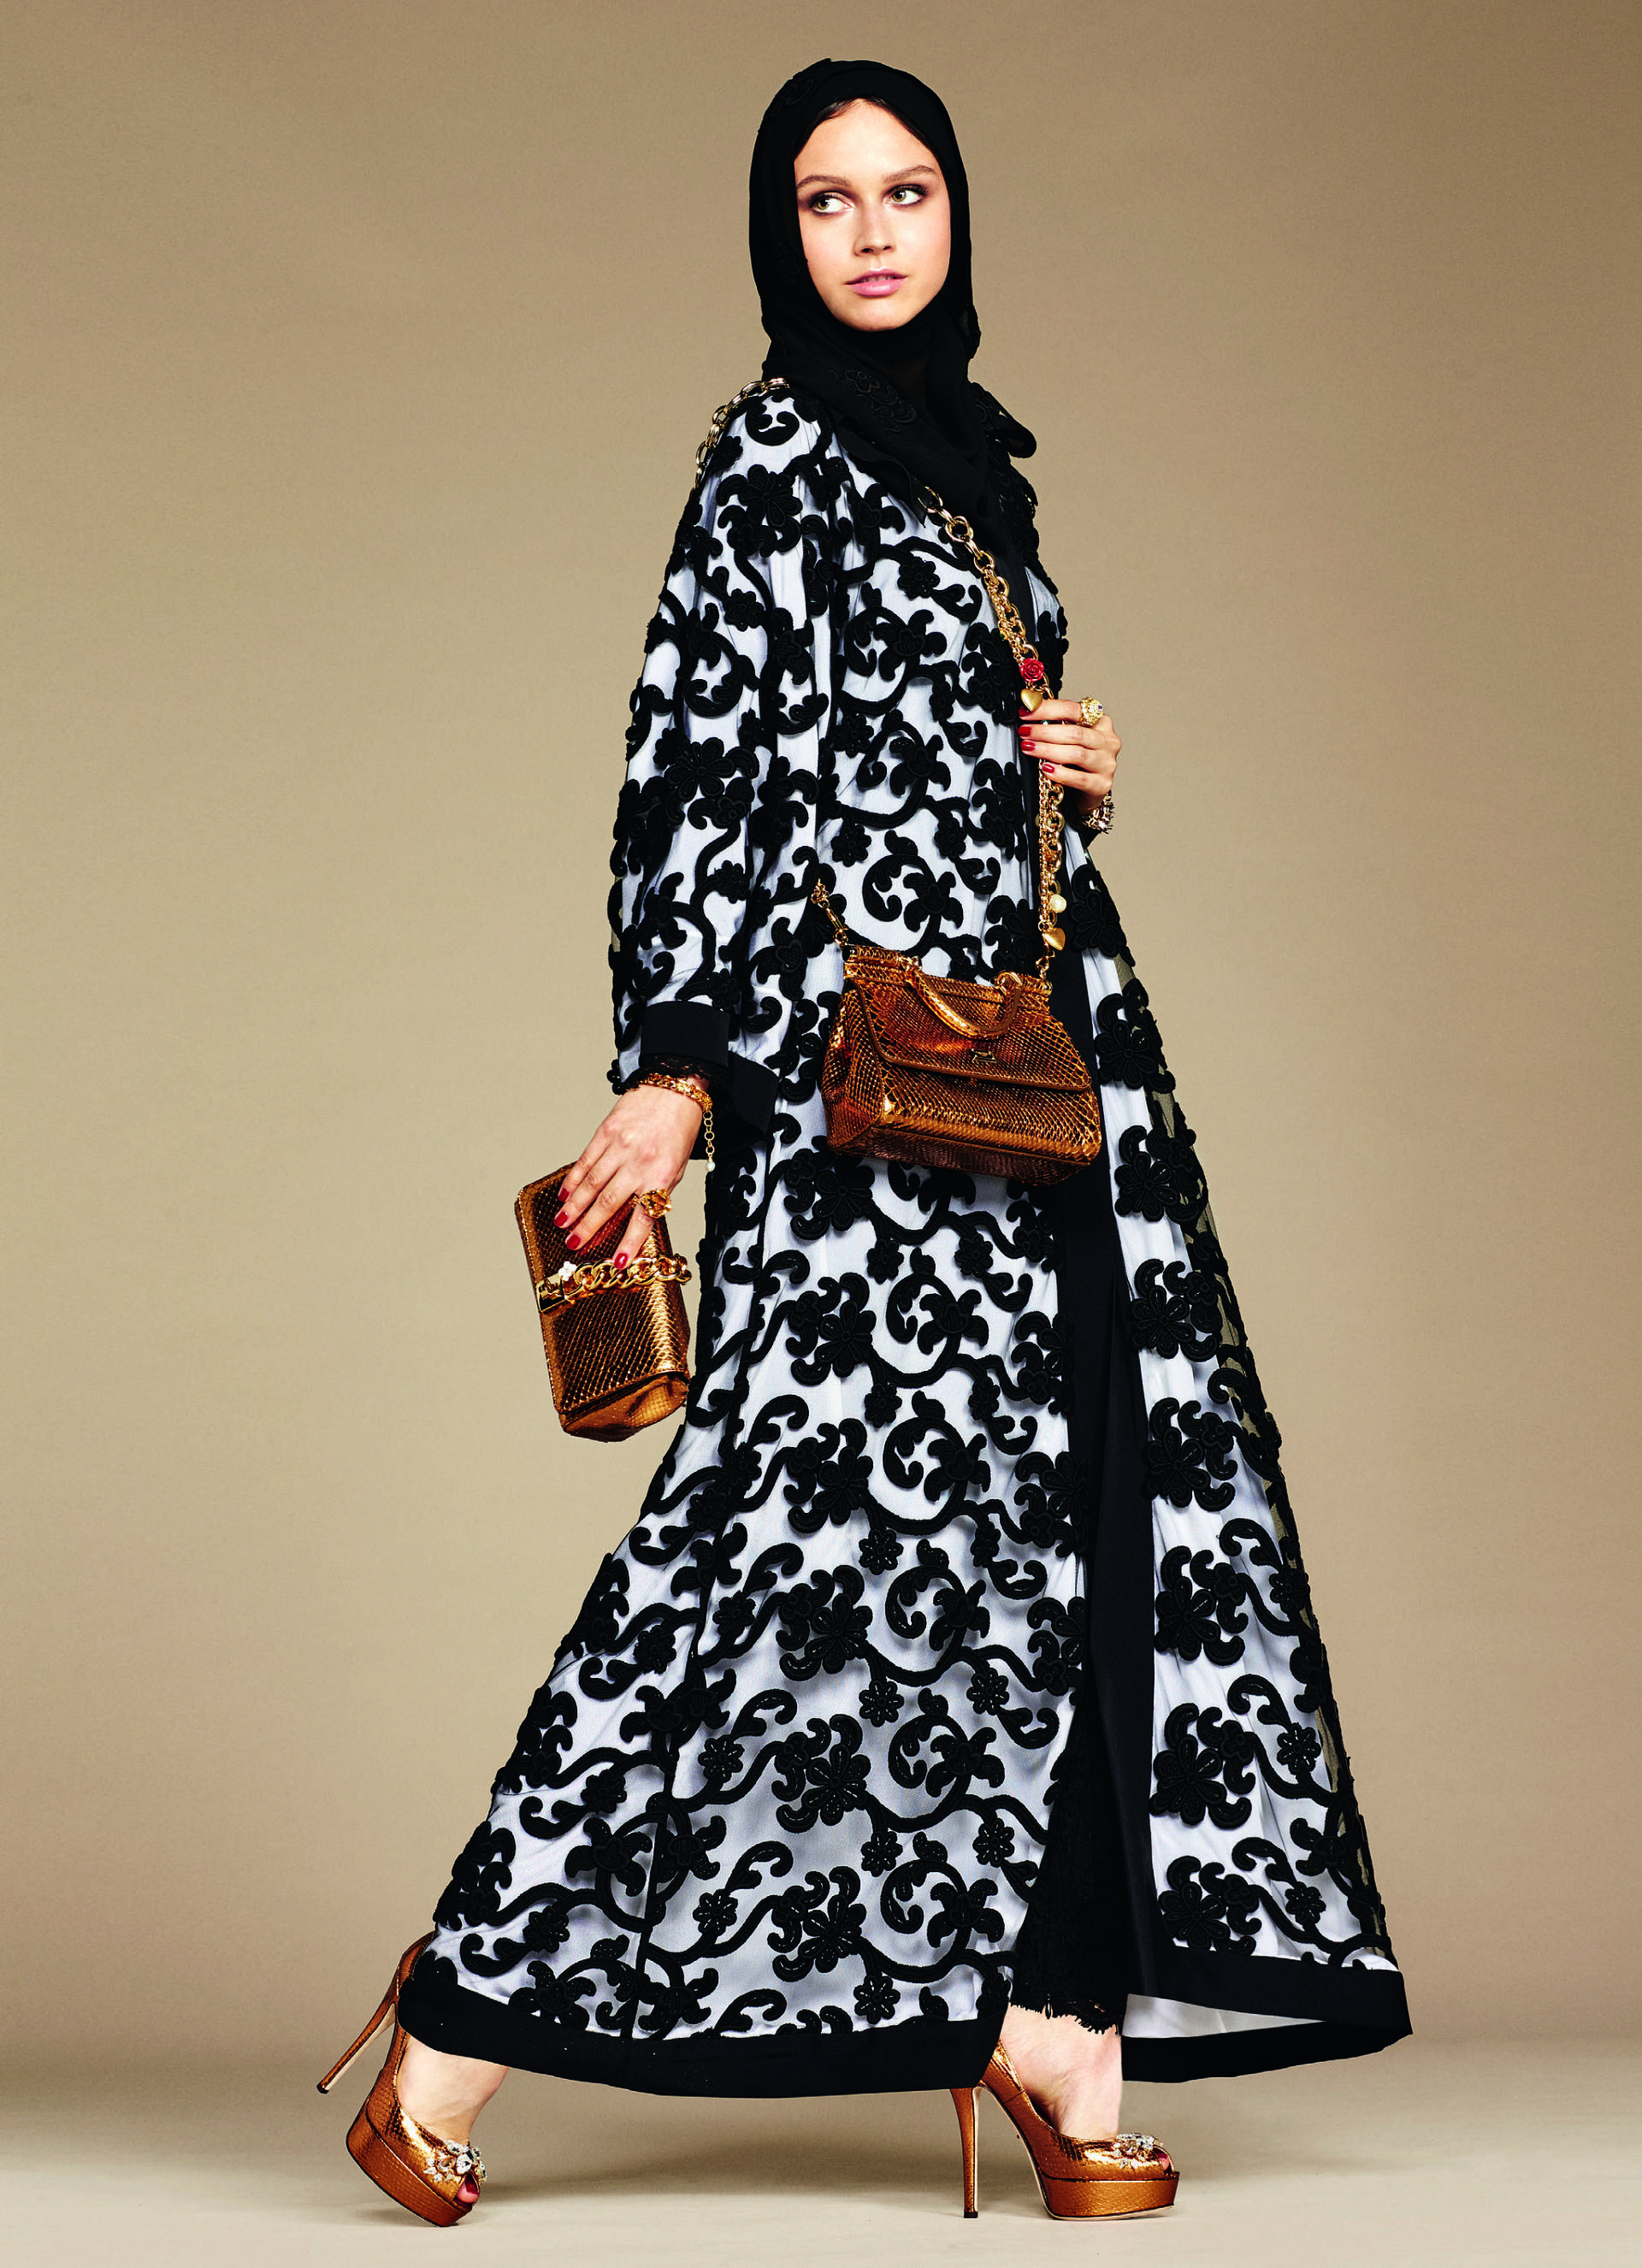 Over_Exposed_Dolce-Gabbana-Hijab-Abaya-Collection10